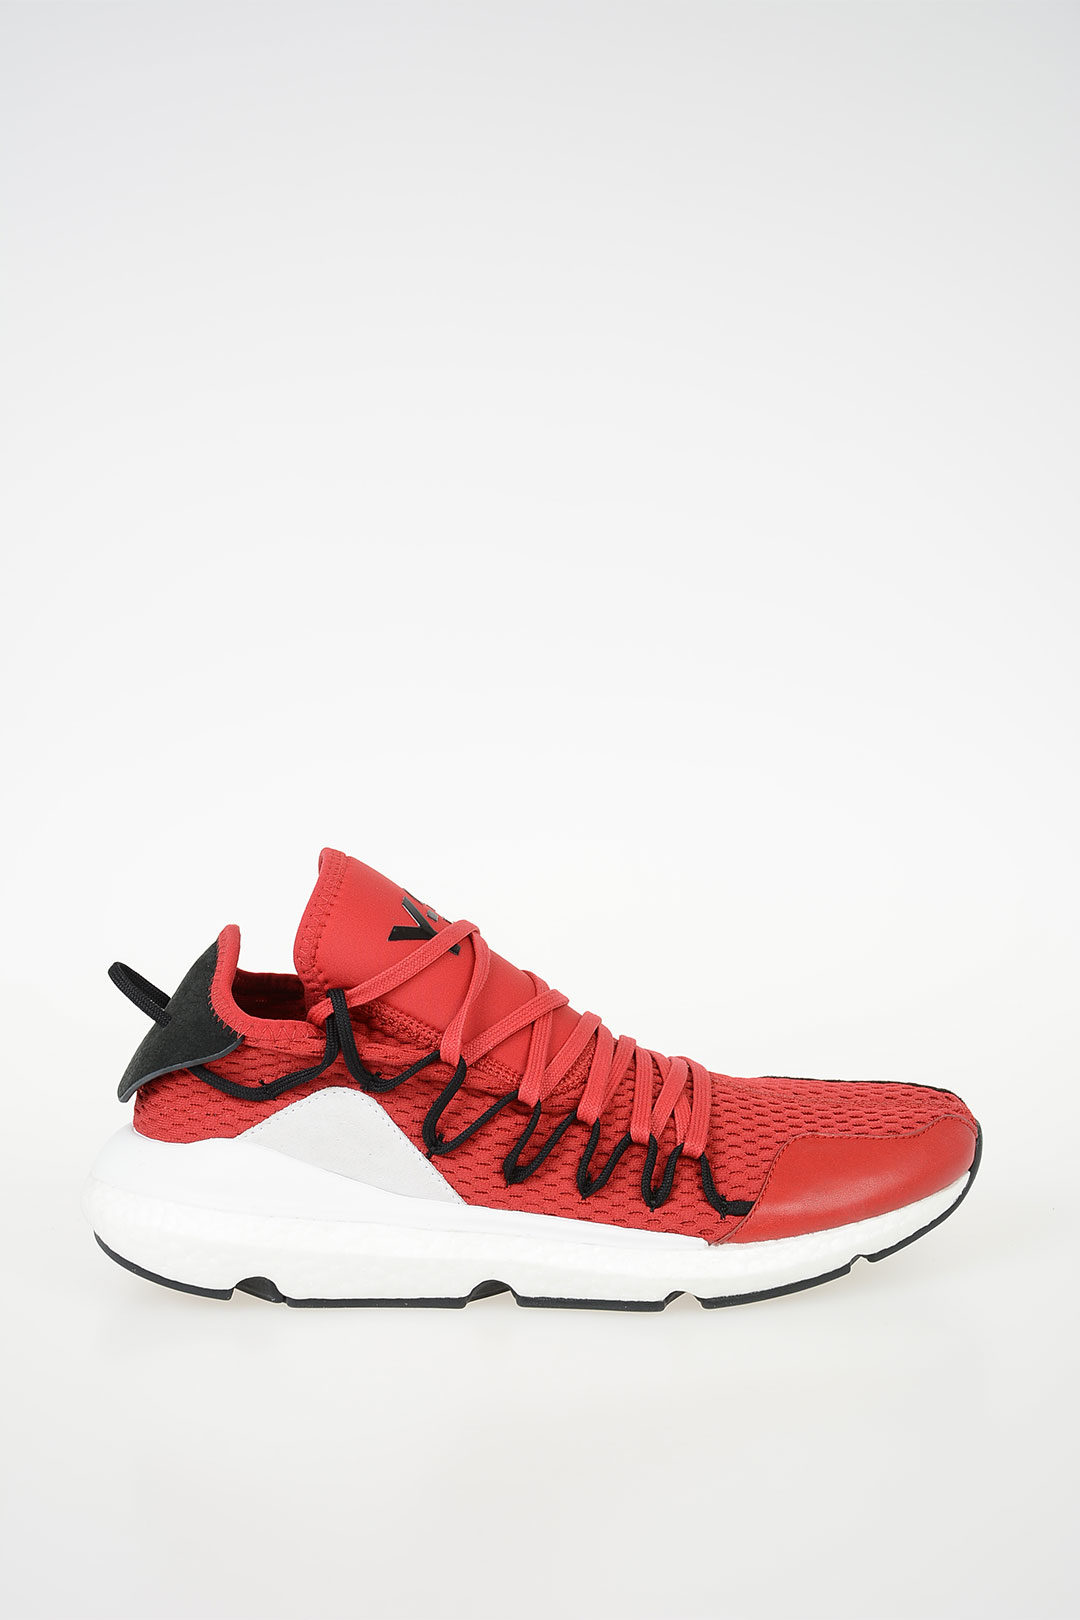 1818f69e5 Adidas Y3 Sneakers KUSARI - Glamood Outlet